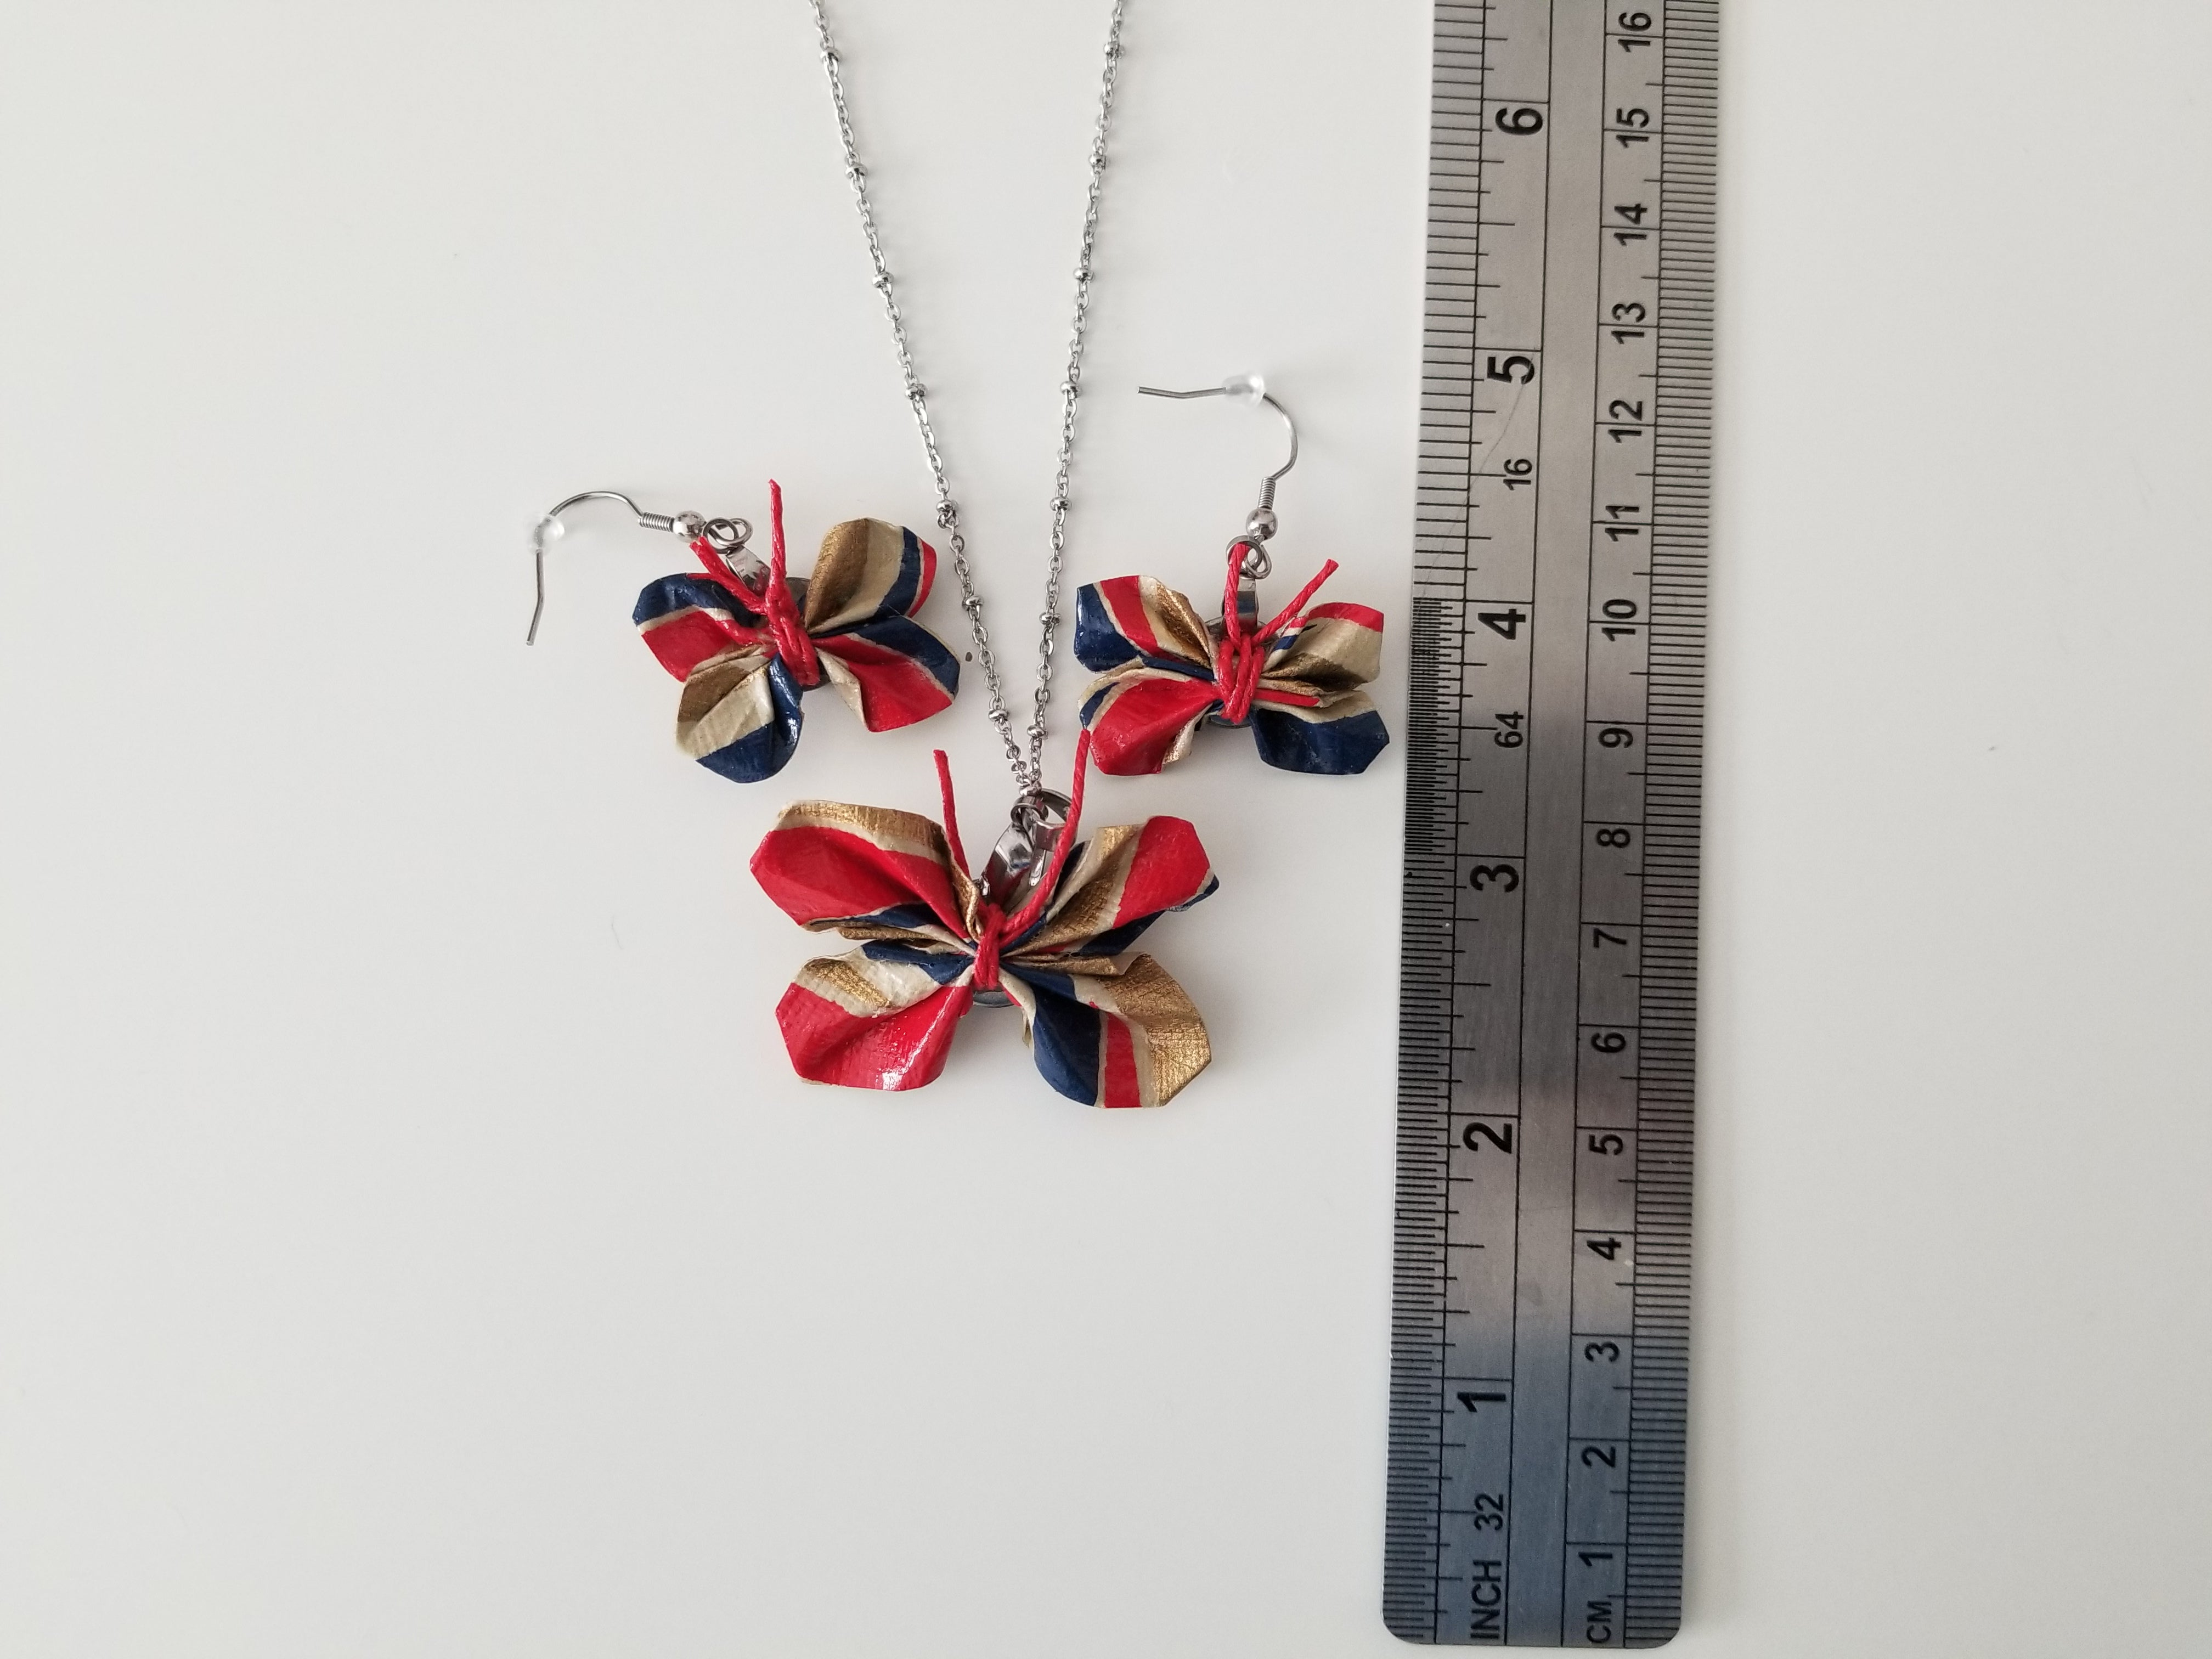 Origami keepsake gifts. Red and blue butterfly pendant and earrings set